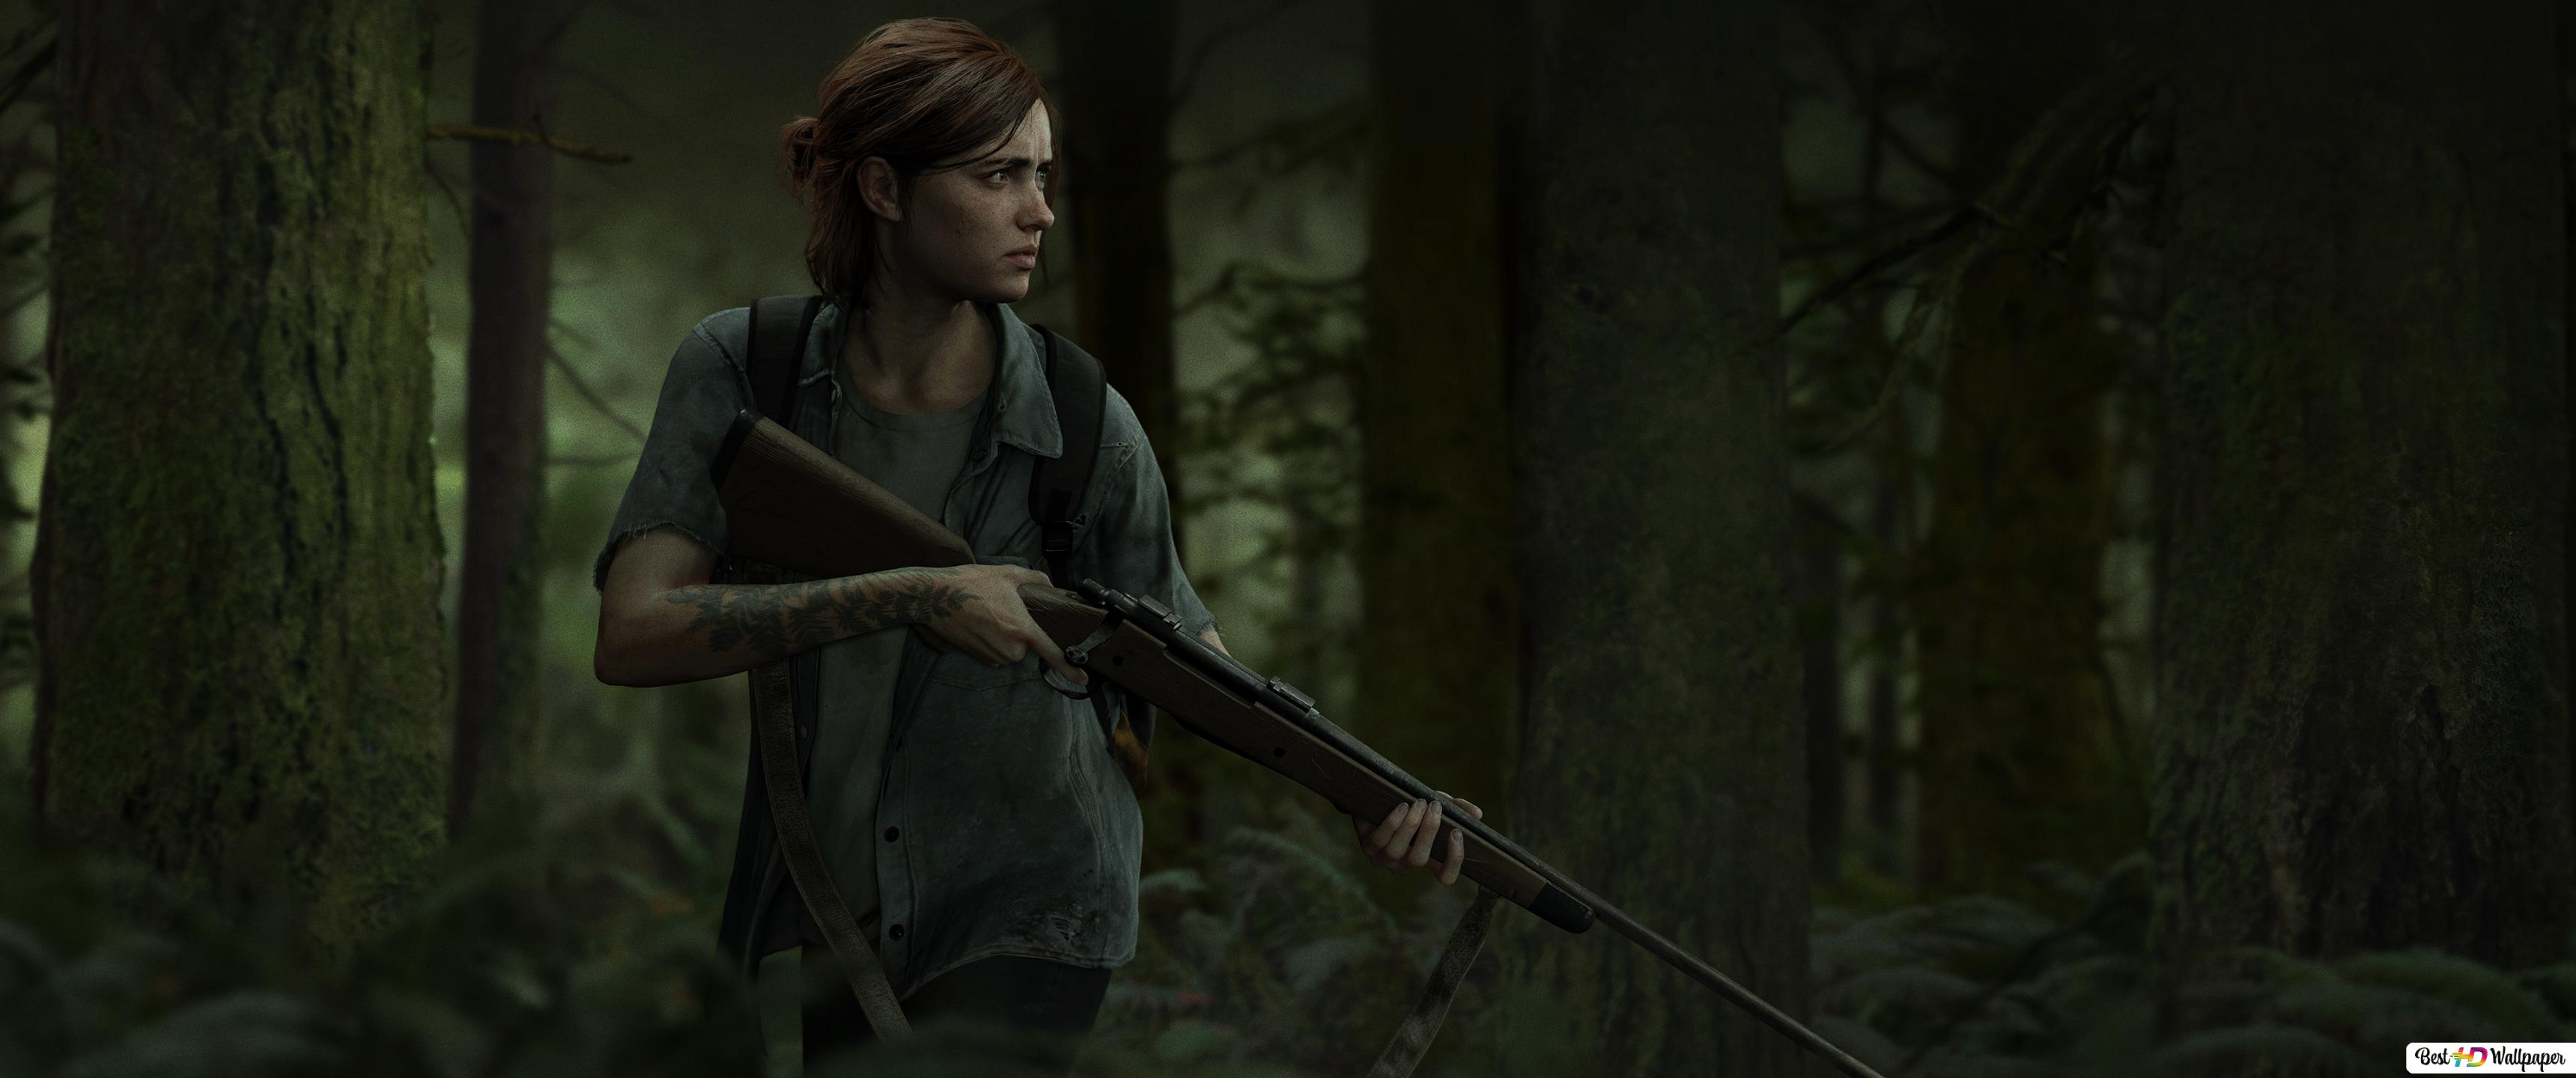 The Last Of Us 2 Outbreak Day Ellie In The Forest Hd Wallpaper